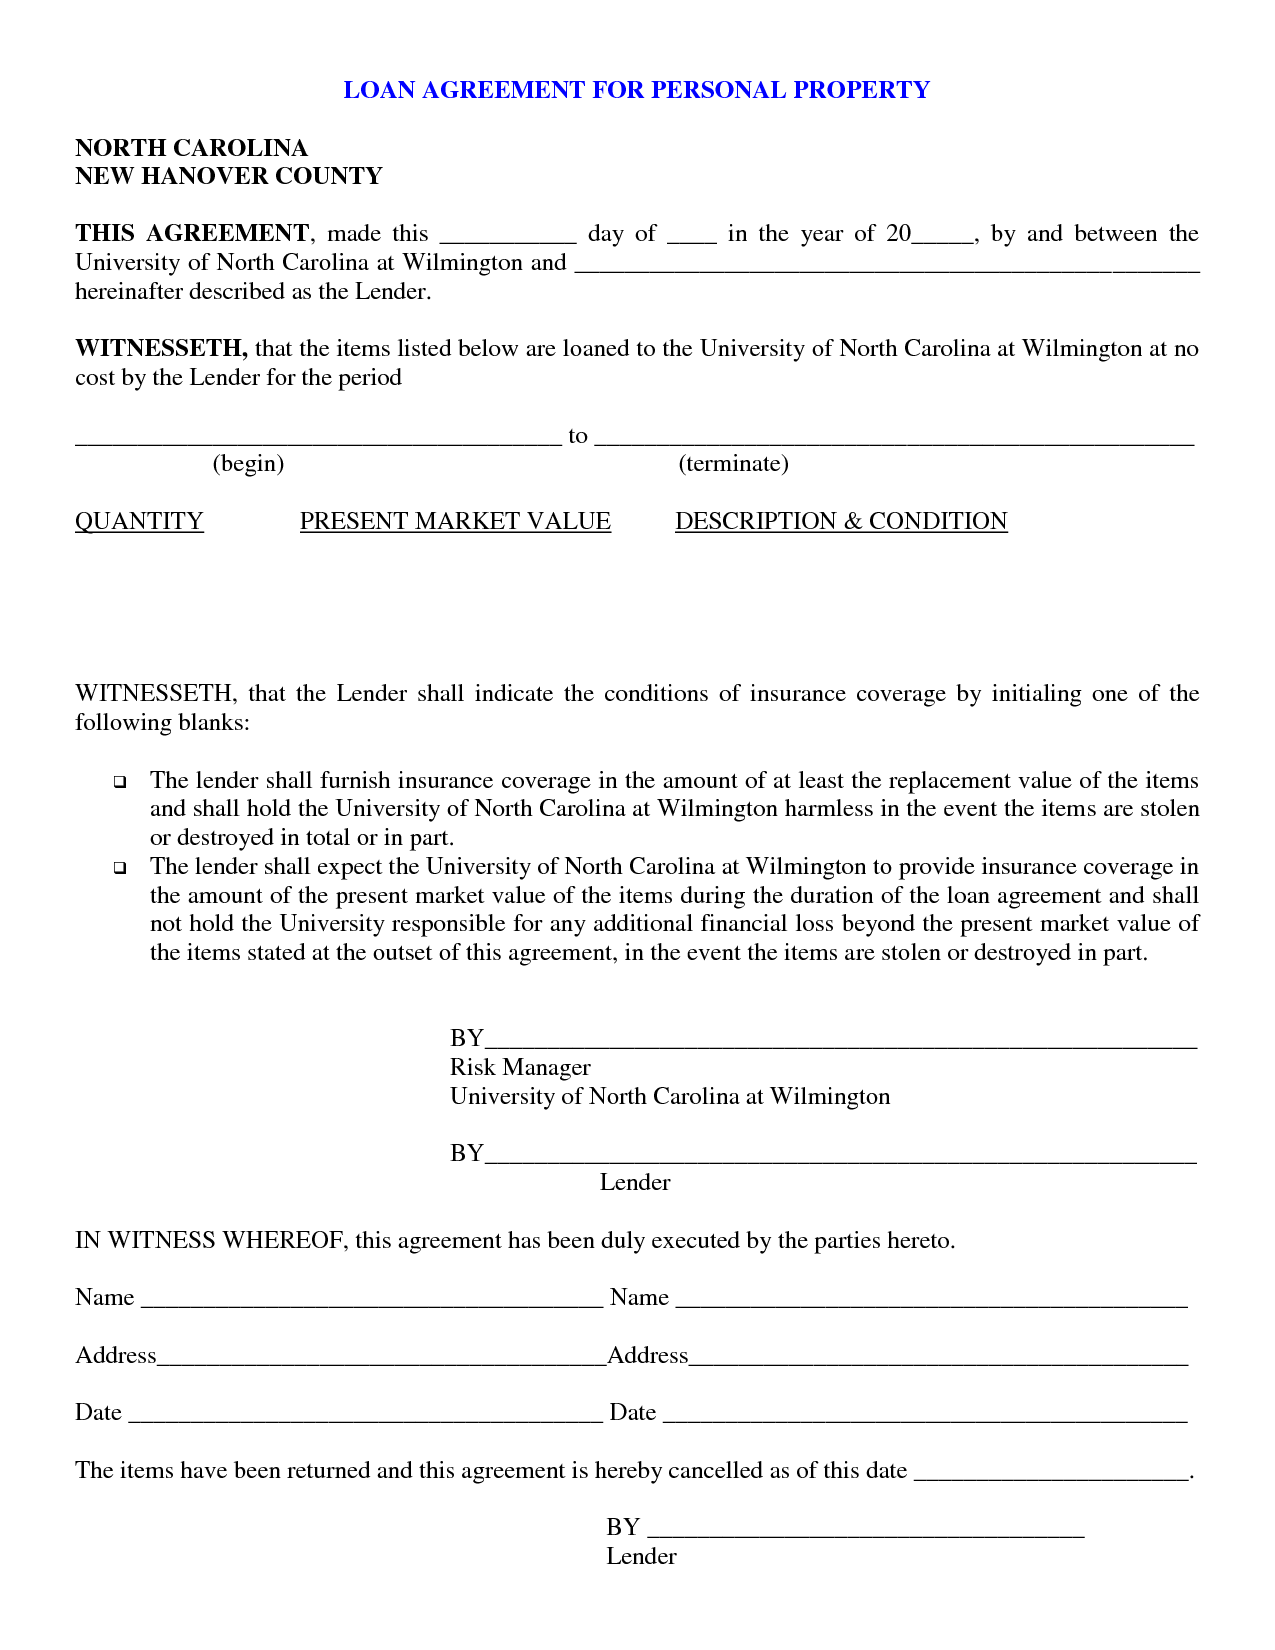 printable sample letter of agreement form laywers template forms b3c463905fa21faa969597104a5bf38e 382243087101927021 simple loan agreement free